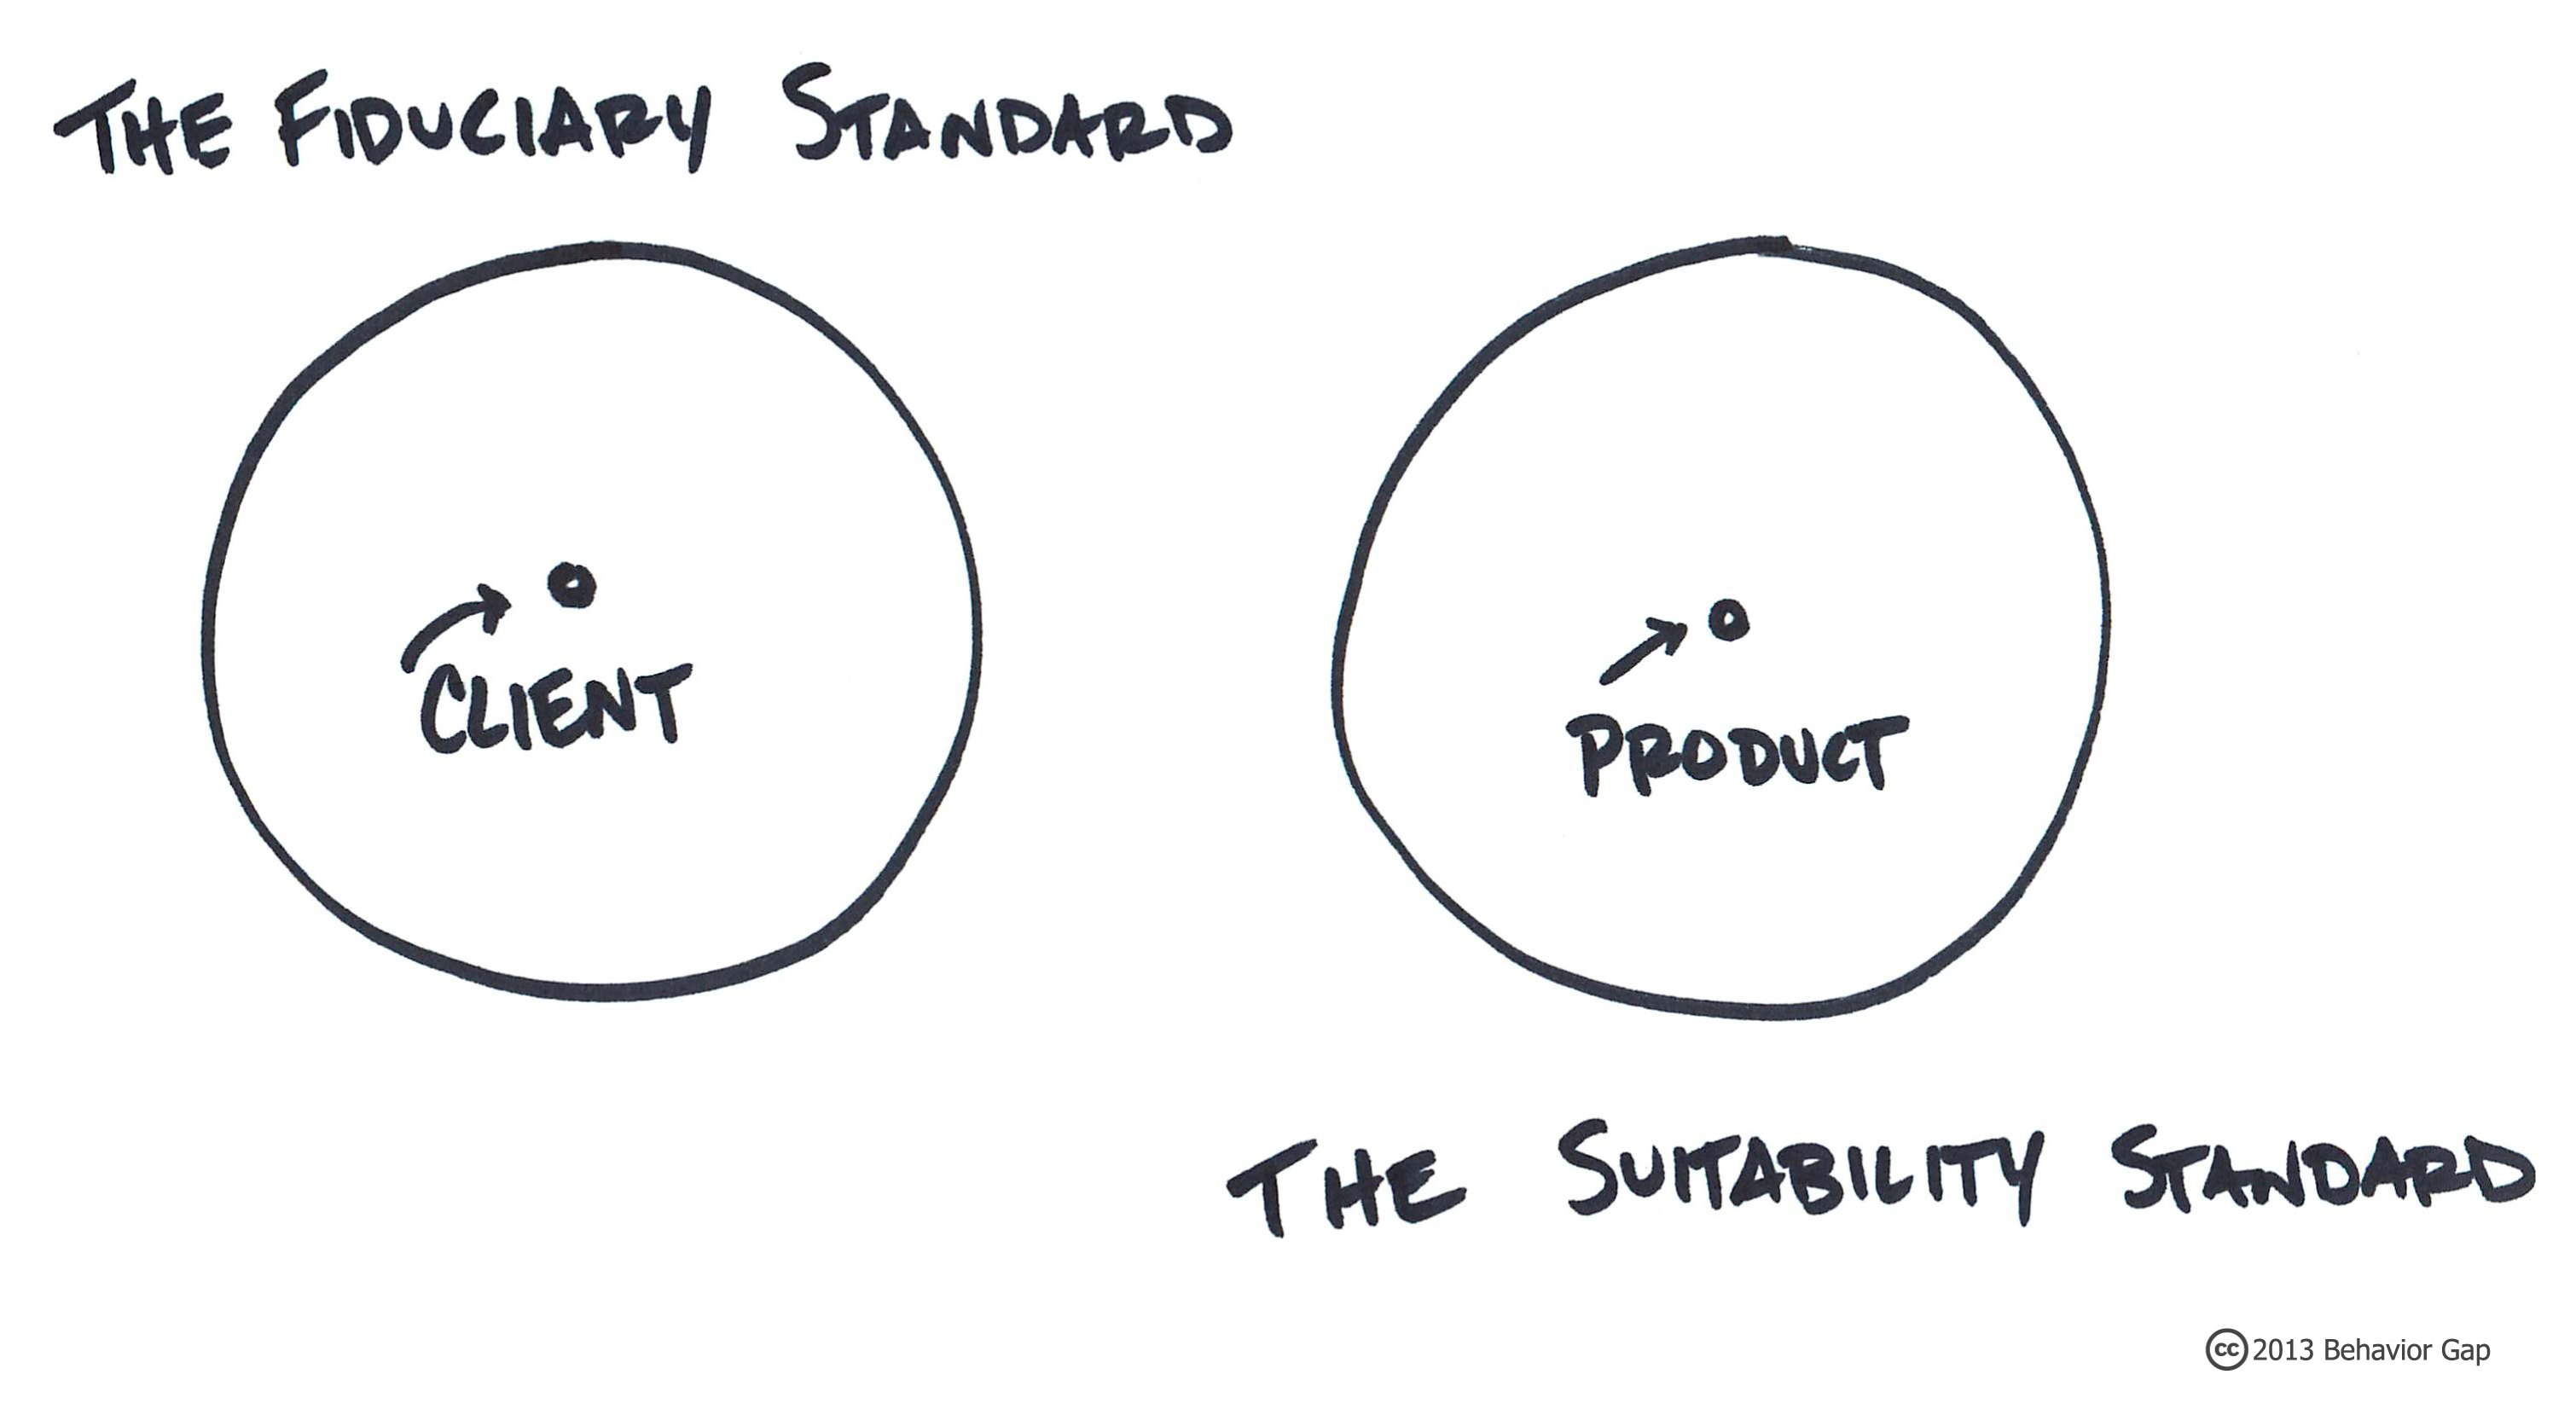 The Fiduciary Standard vs the Suitability Standard